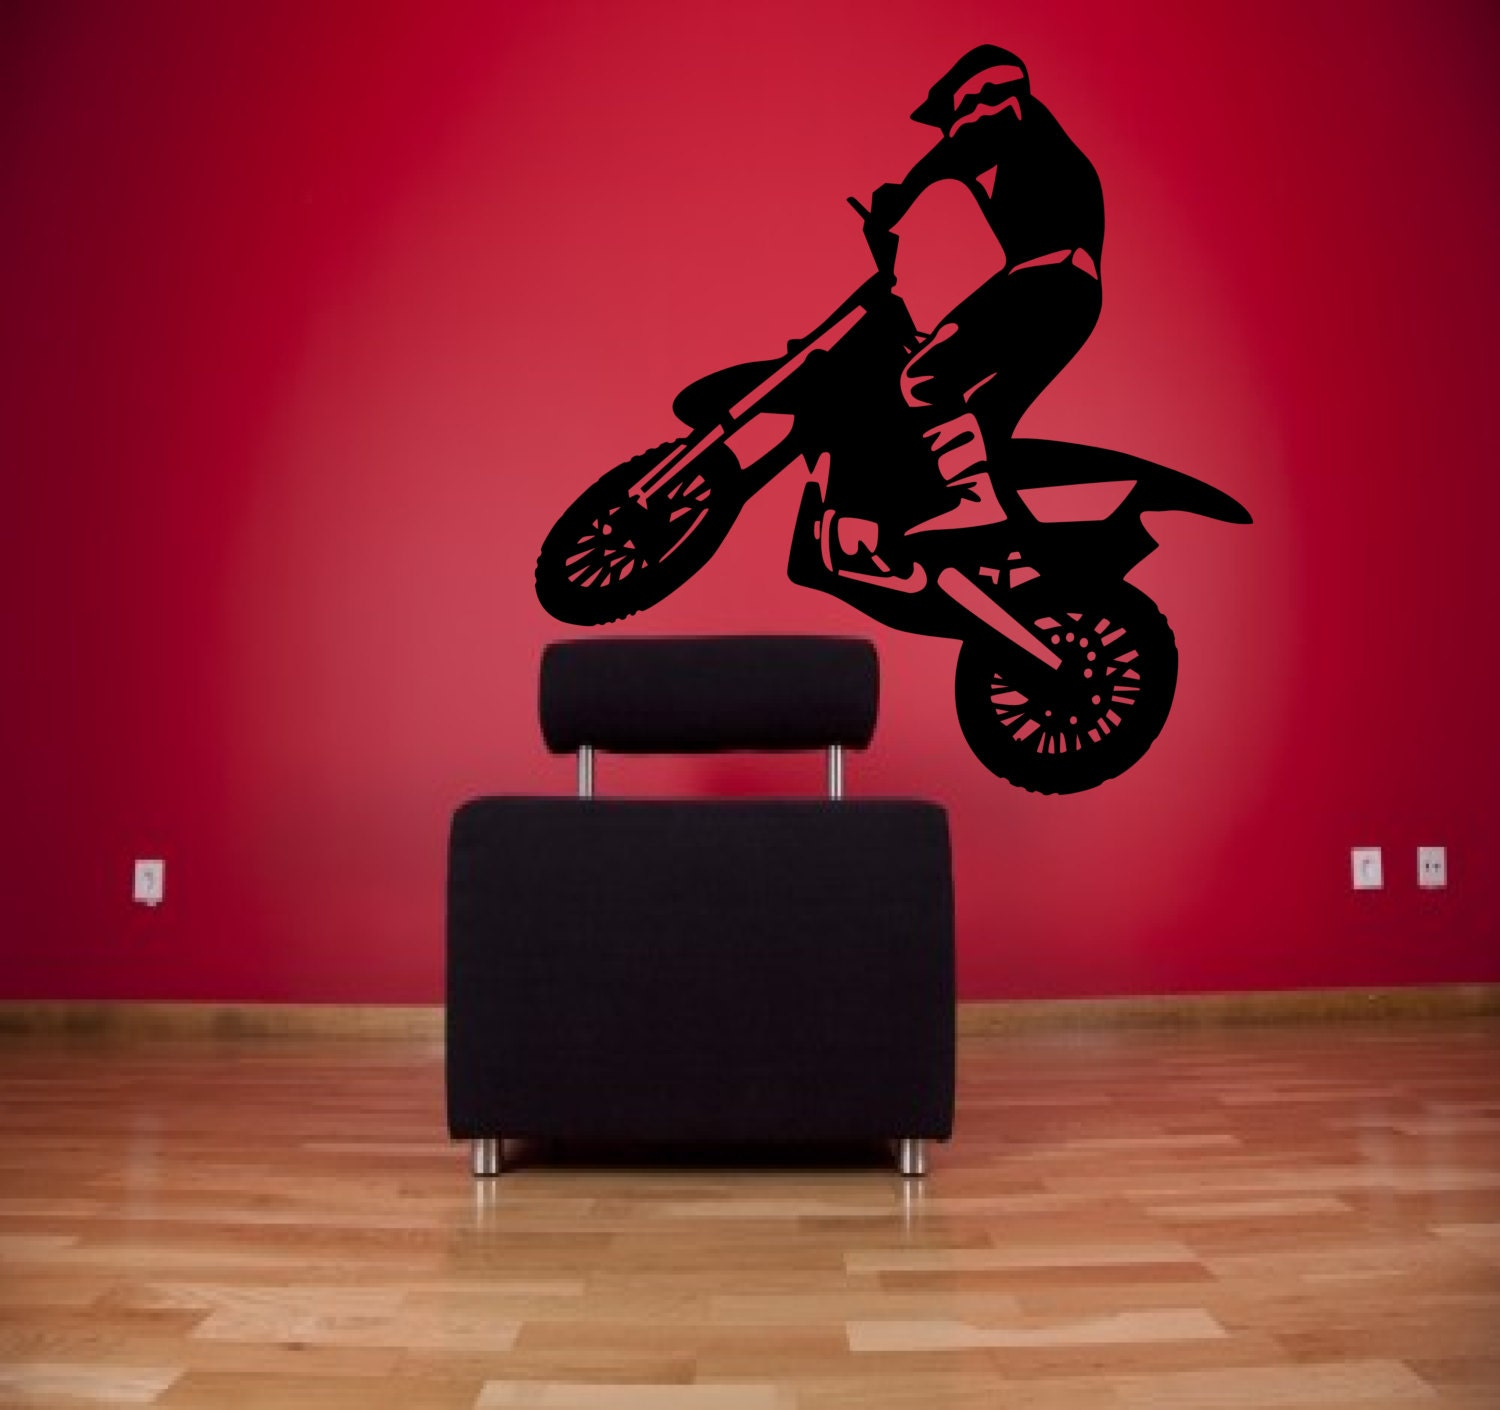 Dirt bike wall decal motor cross decal motorcycle decal for Dirt bike wall mural